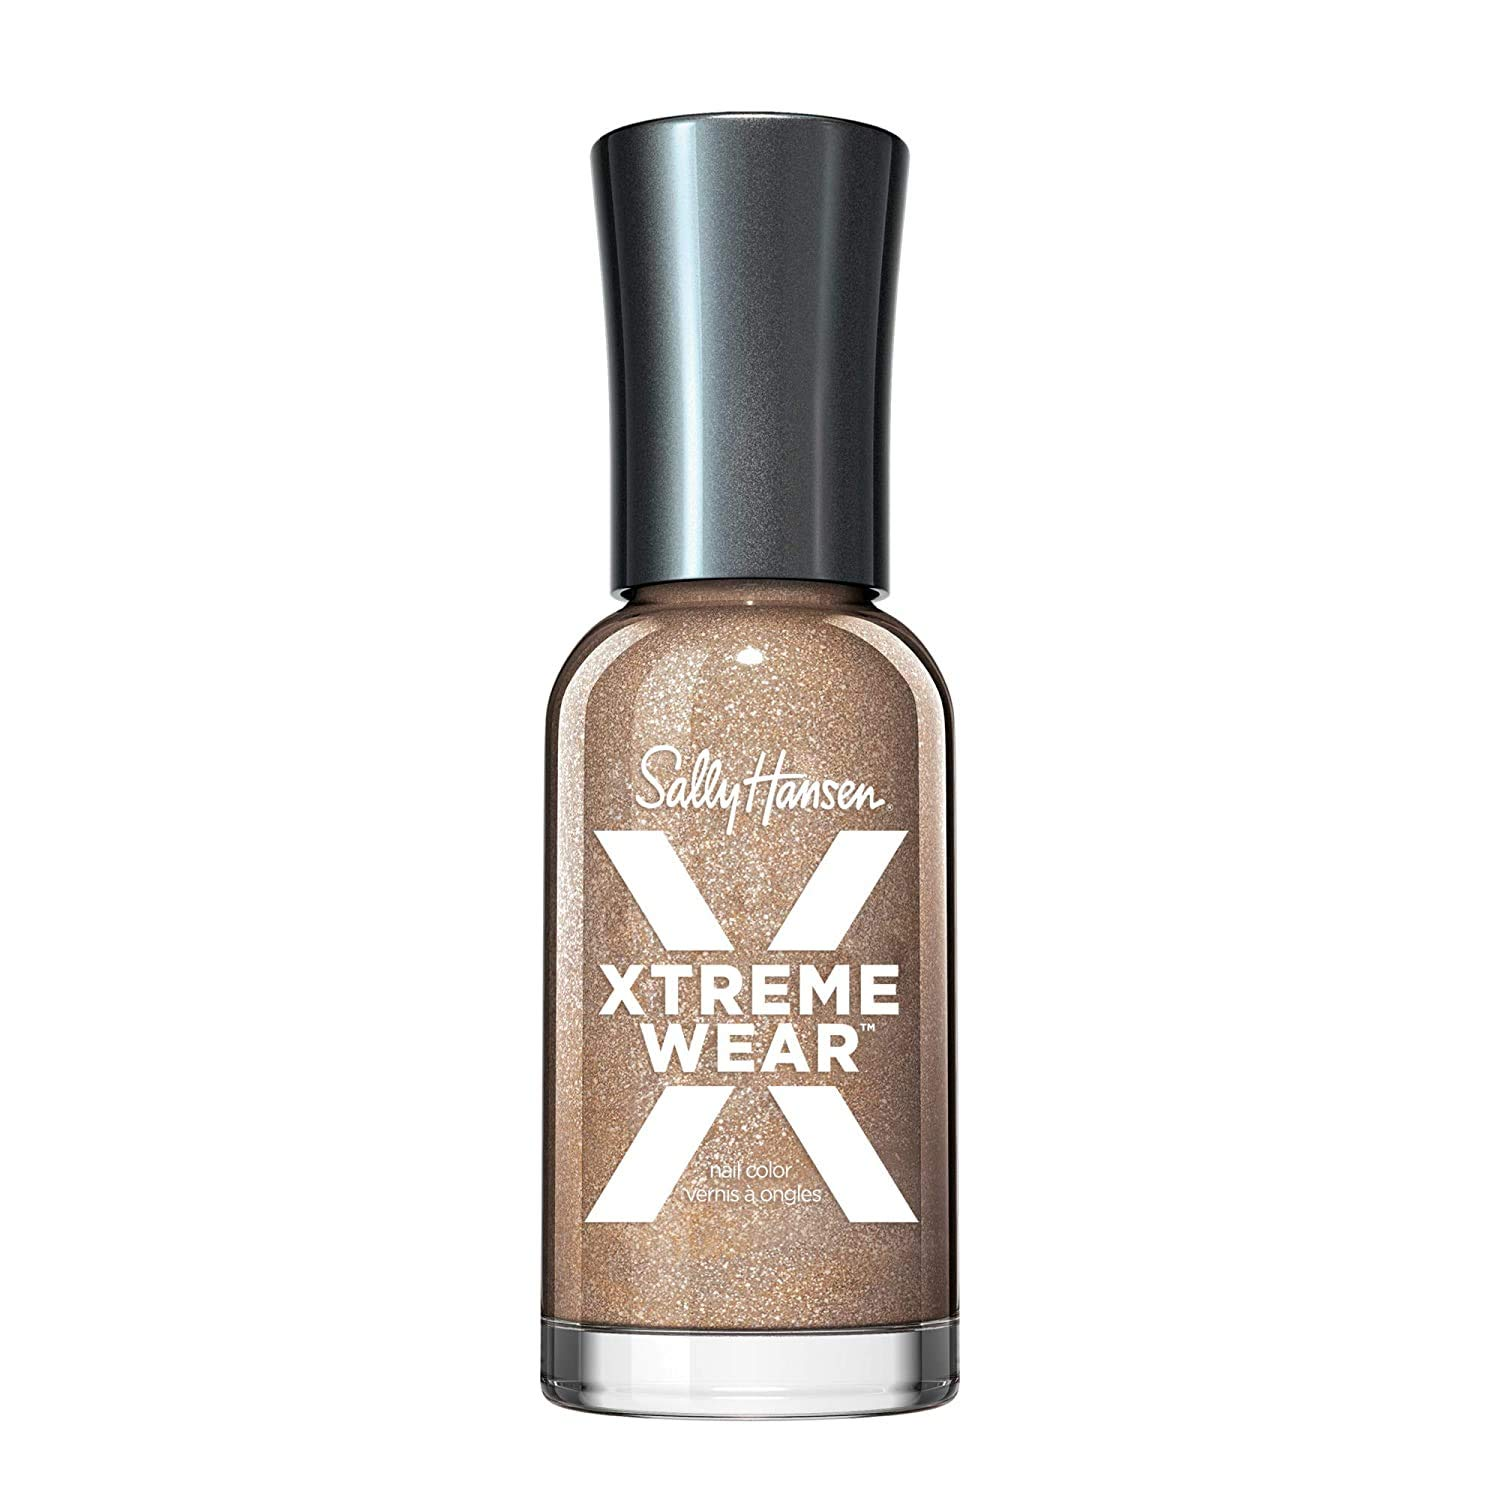 Sally Hansen Hard as Nails Xtreme Wear, Golden-I